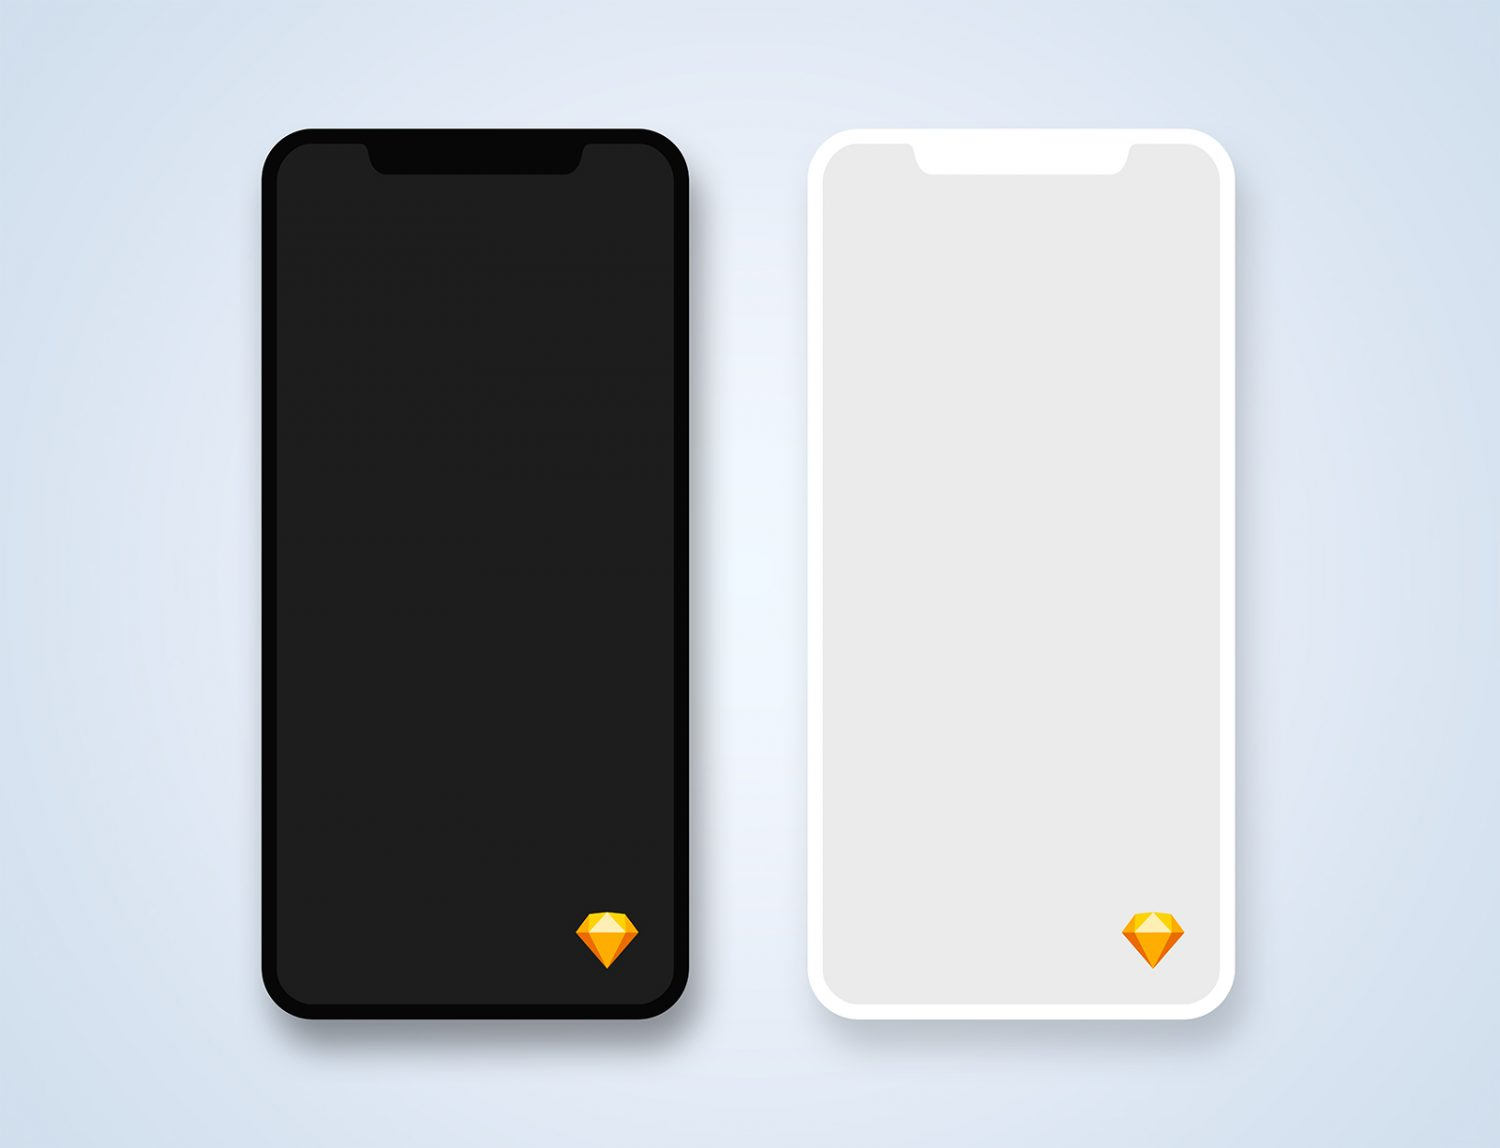 Free iPhone 11 Pro Sketch Mockup